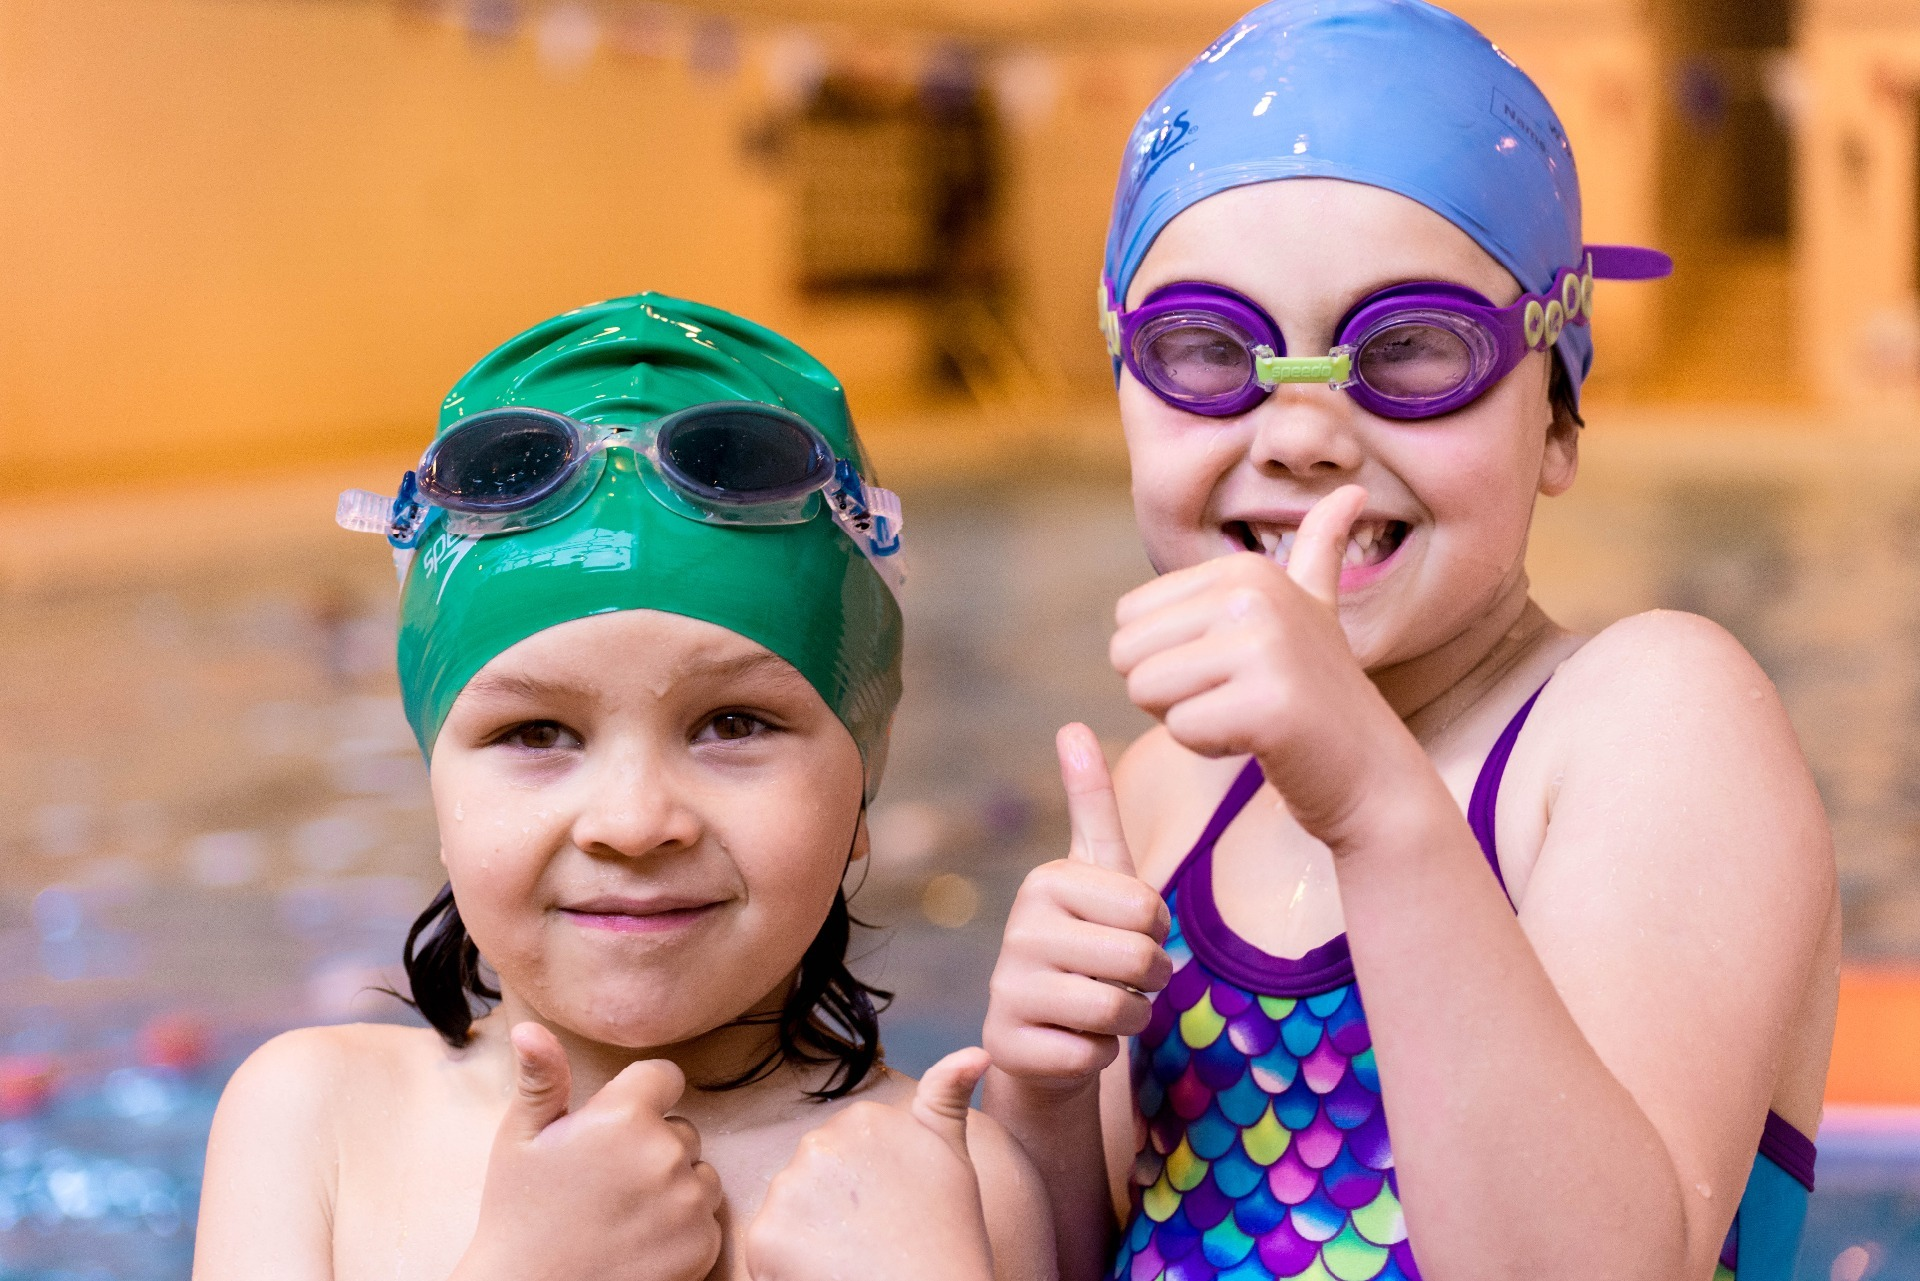 Children in swimming costumes giving thumbs up